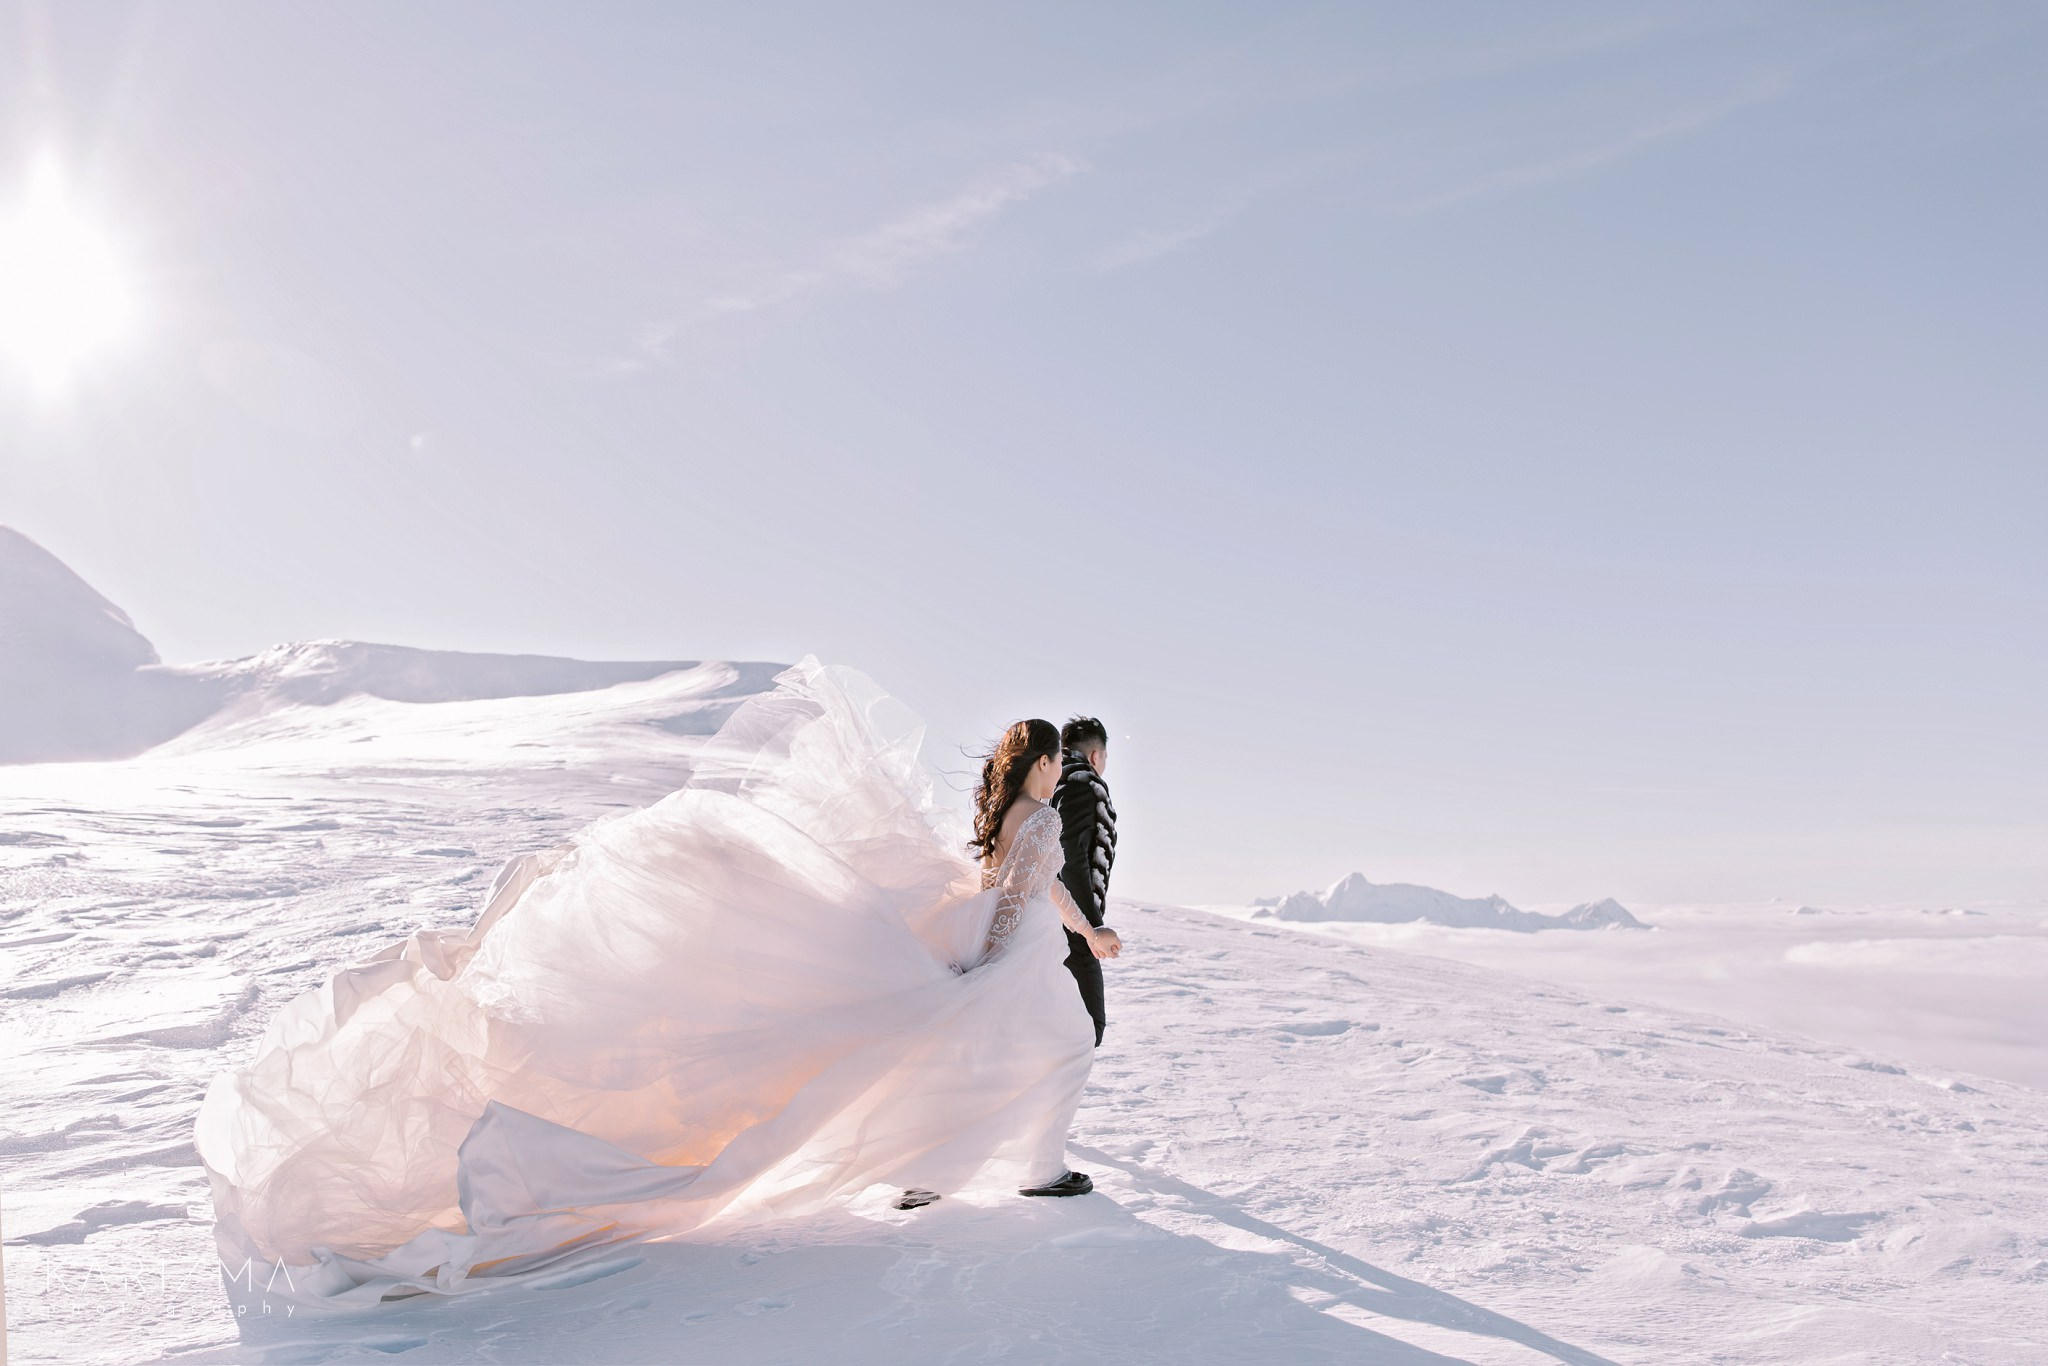 Bride and groom walking on the snow in the mountains